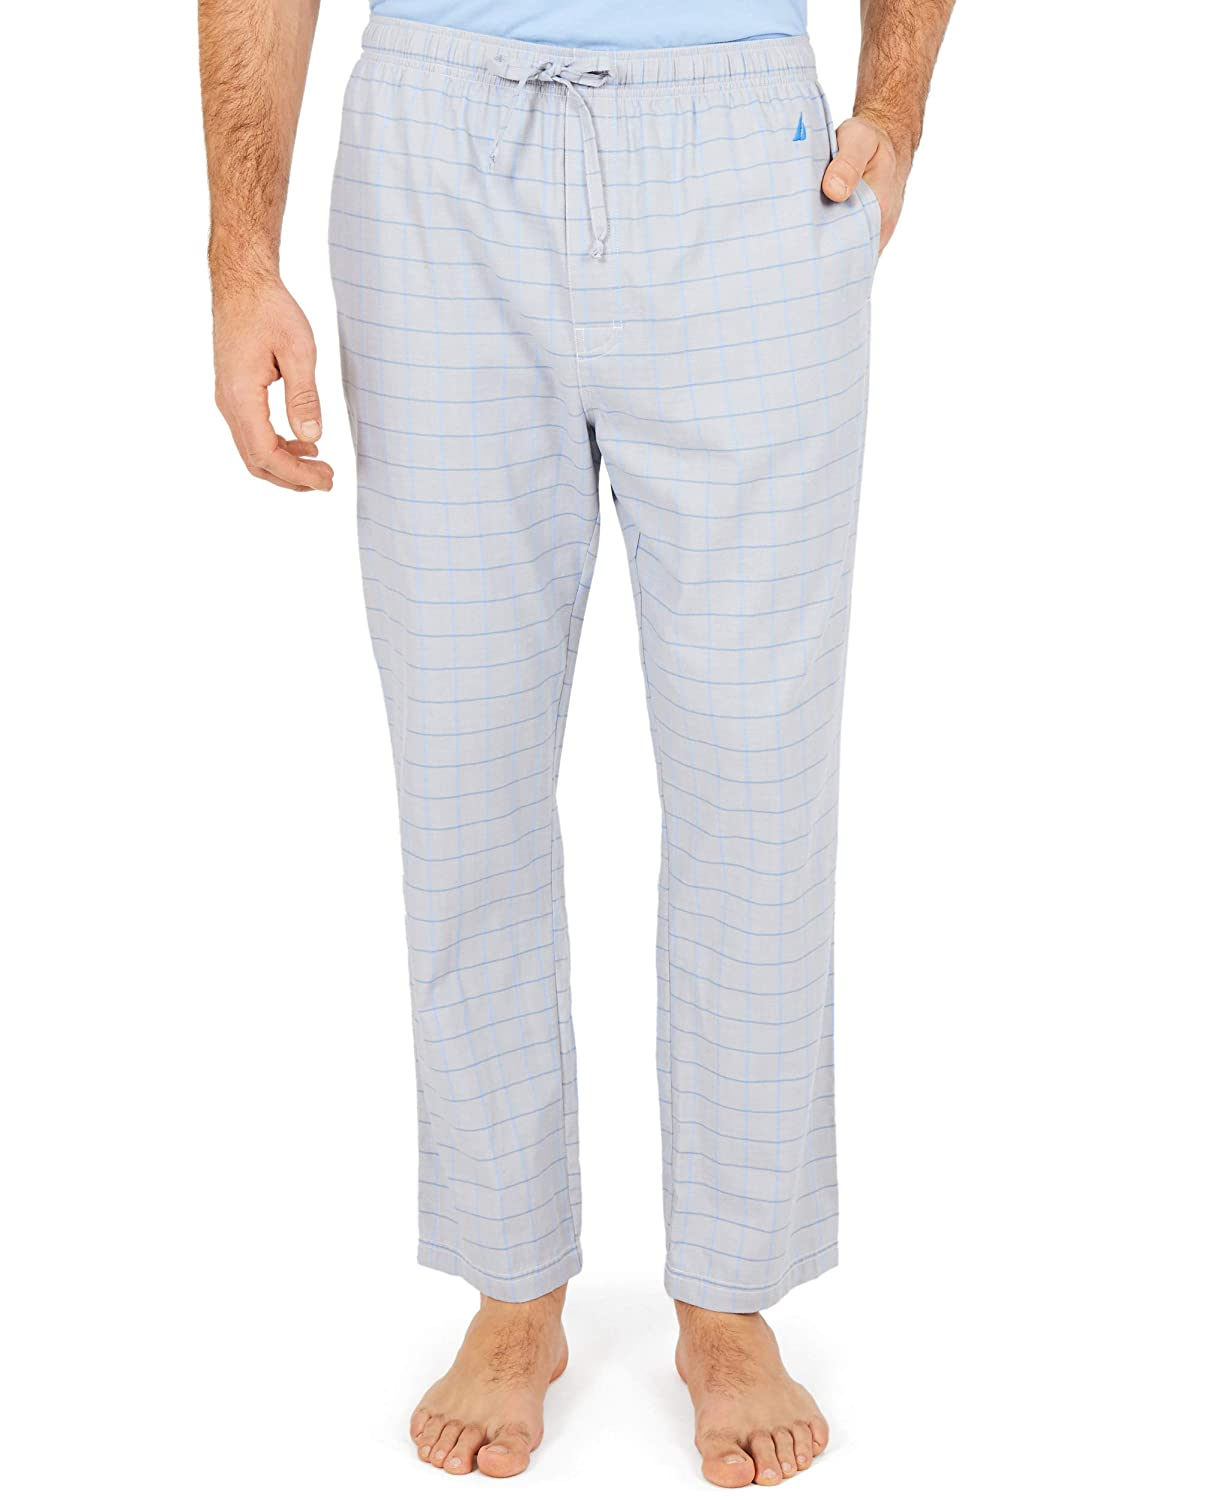 Nautica Mens Soft Woven 100  Cotton Elastic Waistband Sleep Pajama Pant